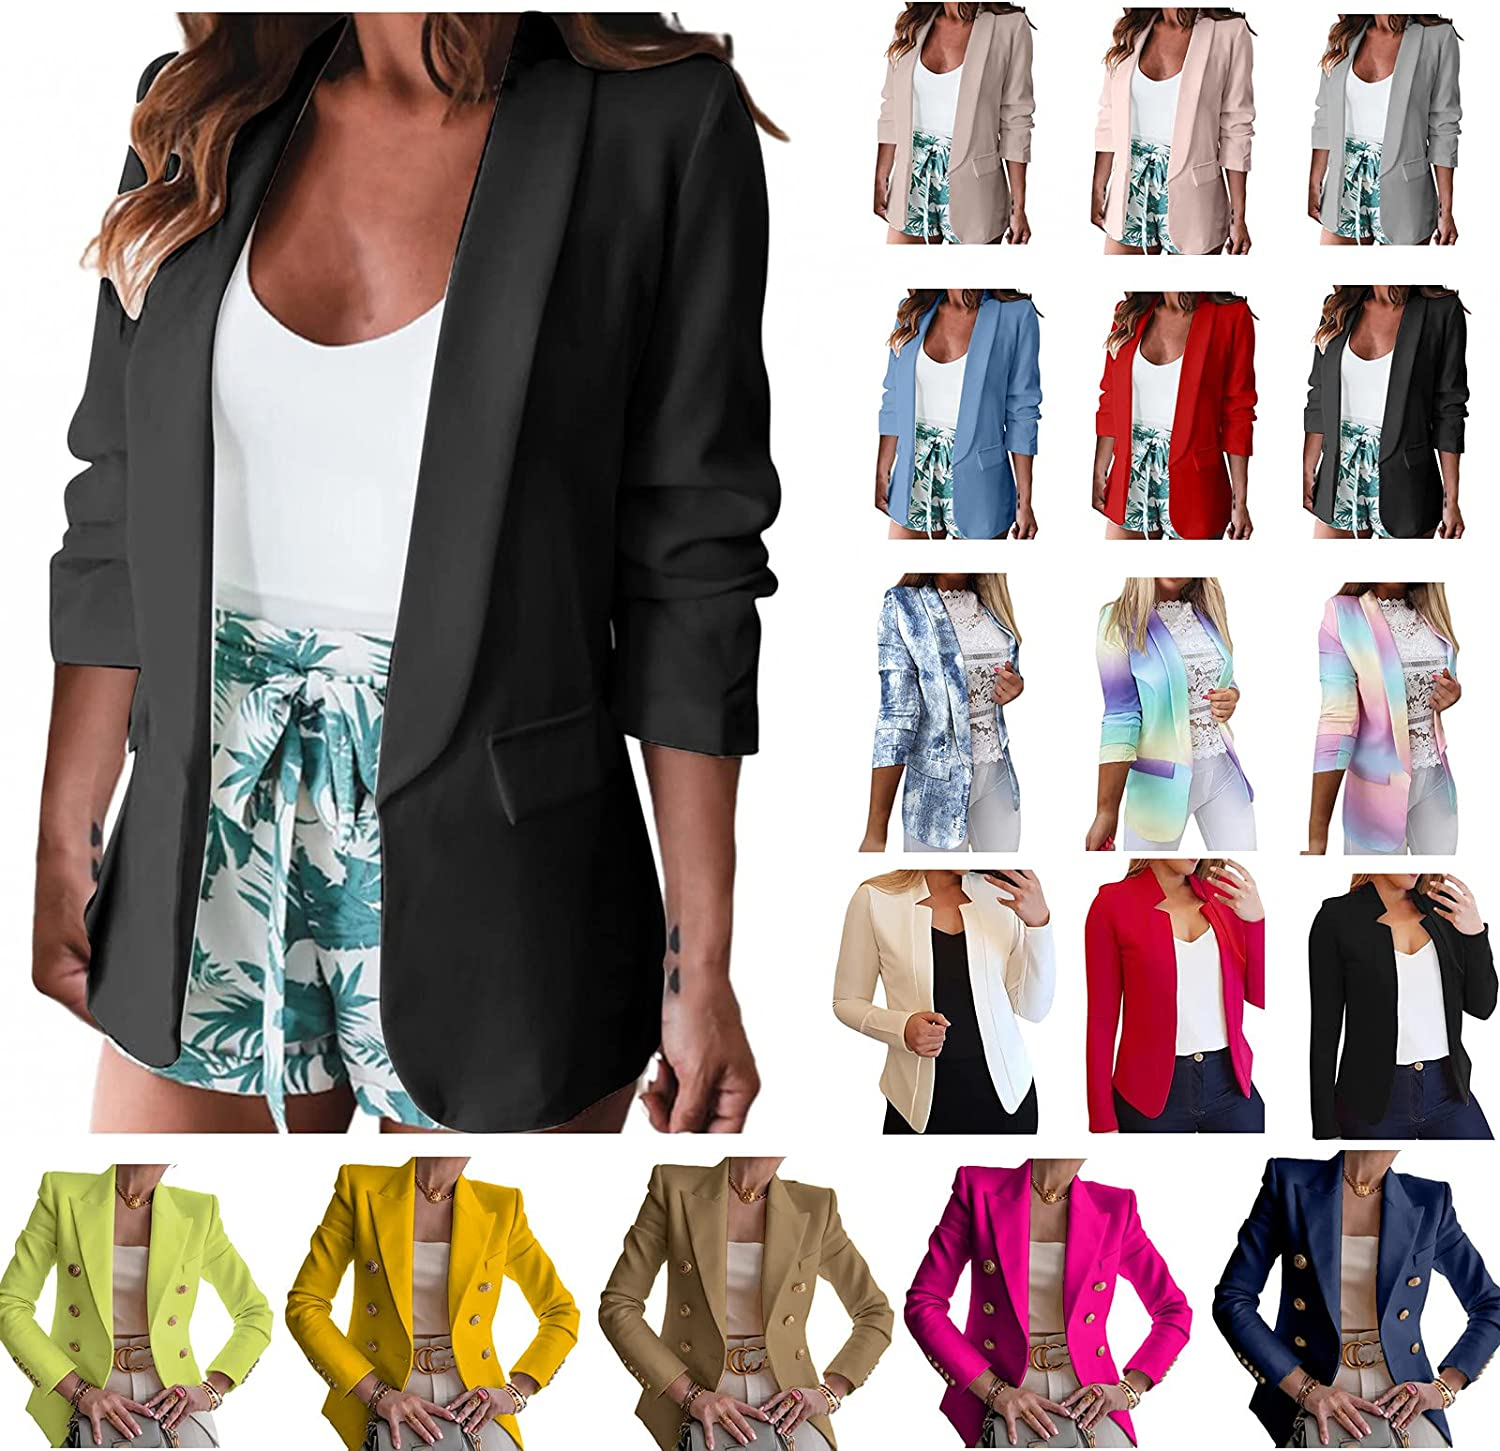 DOYIMBO Long Sleeve Blazer Jackets for Limited time trial price Casual Blo Women Ranking TOP3 Business